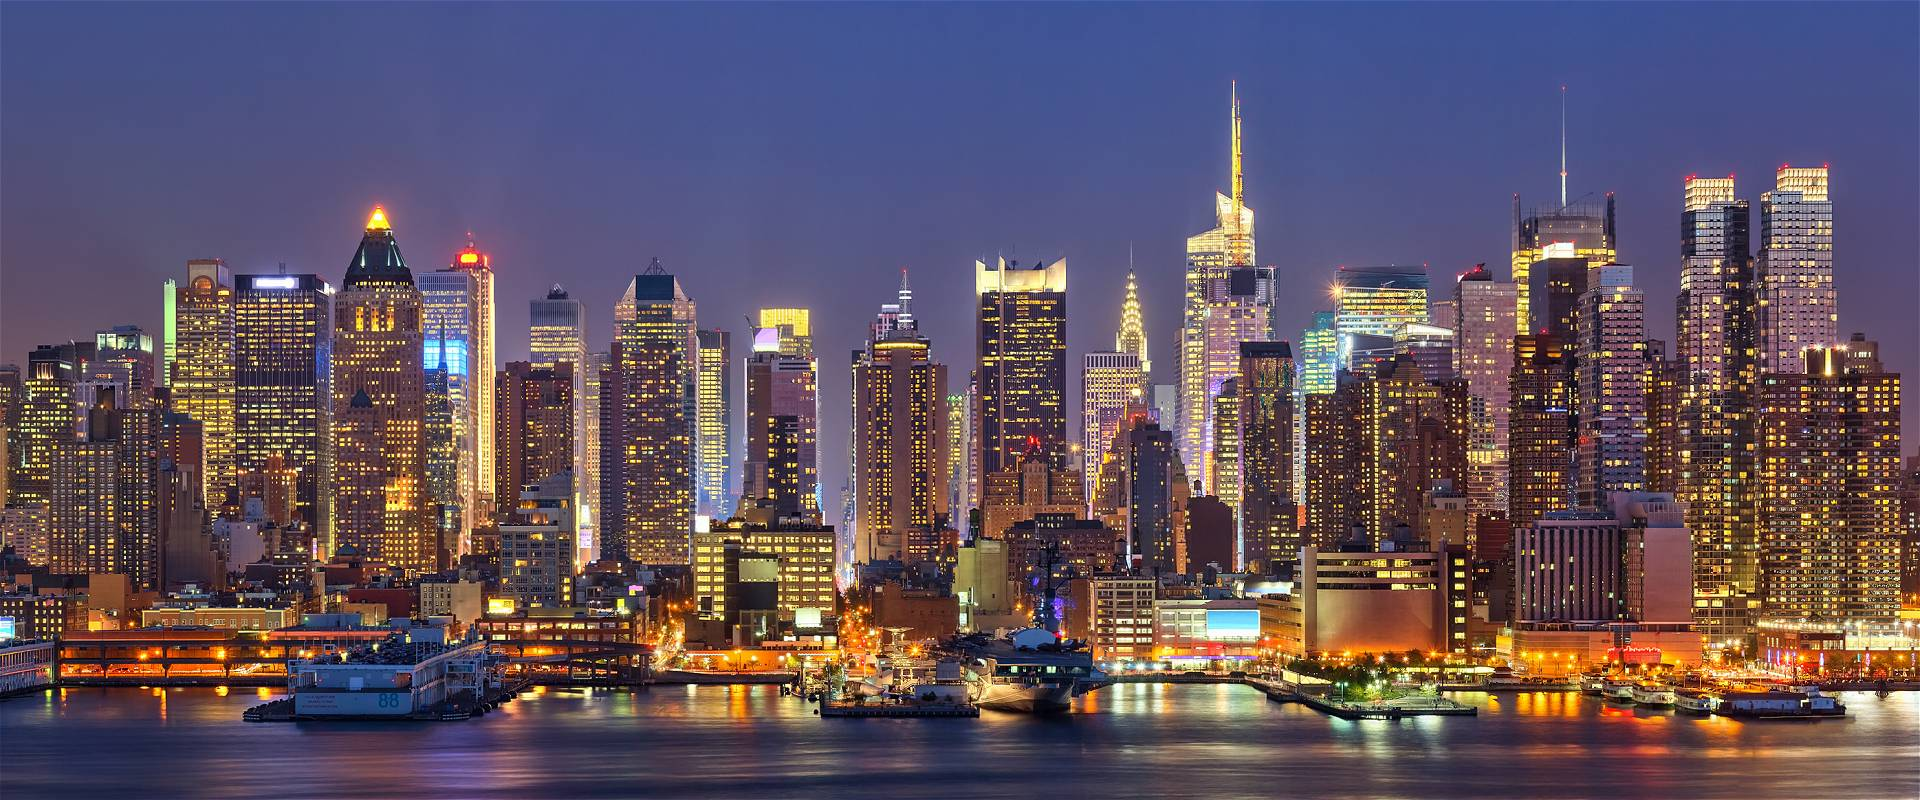 Student's Review.'A trip to New York' by Eliseu Vilaclara